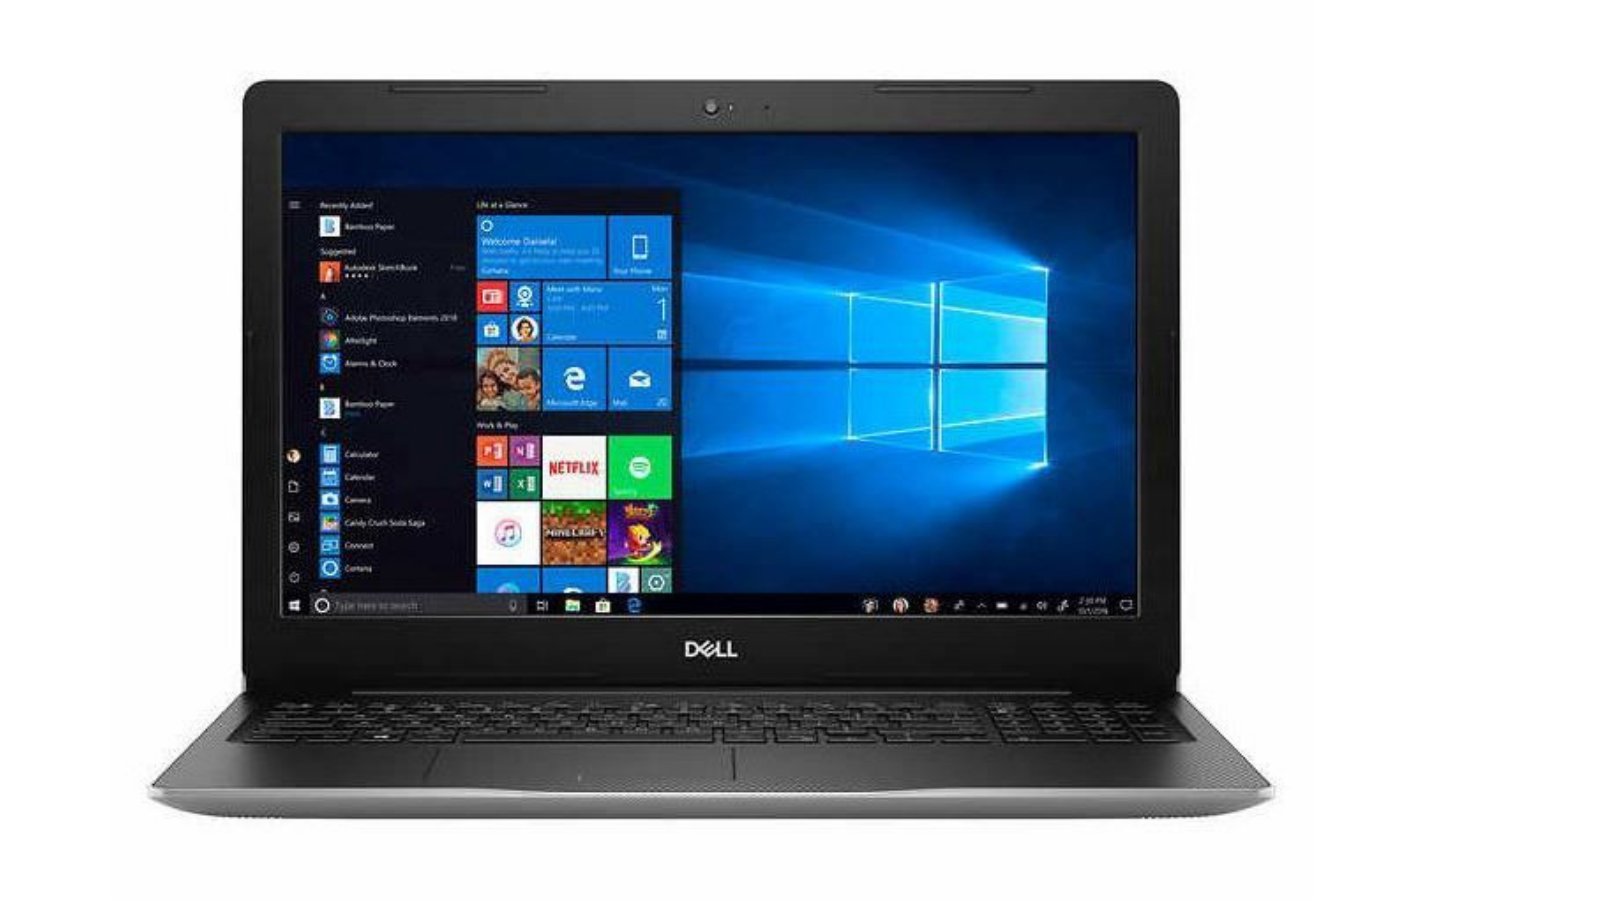 dell outlet laptop